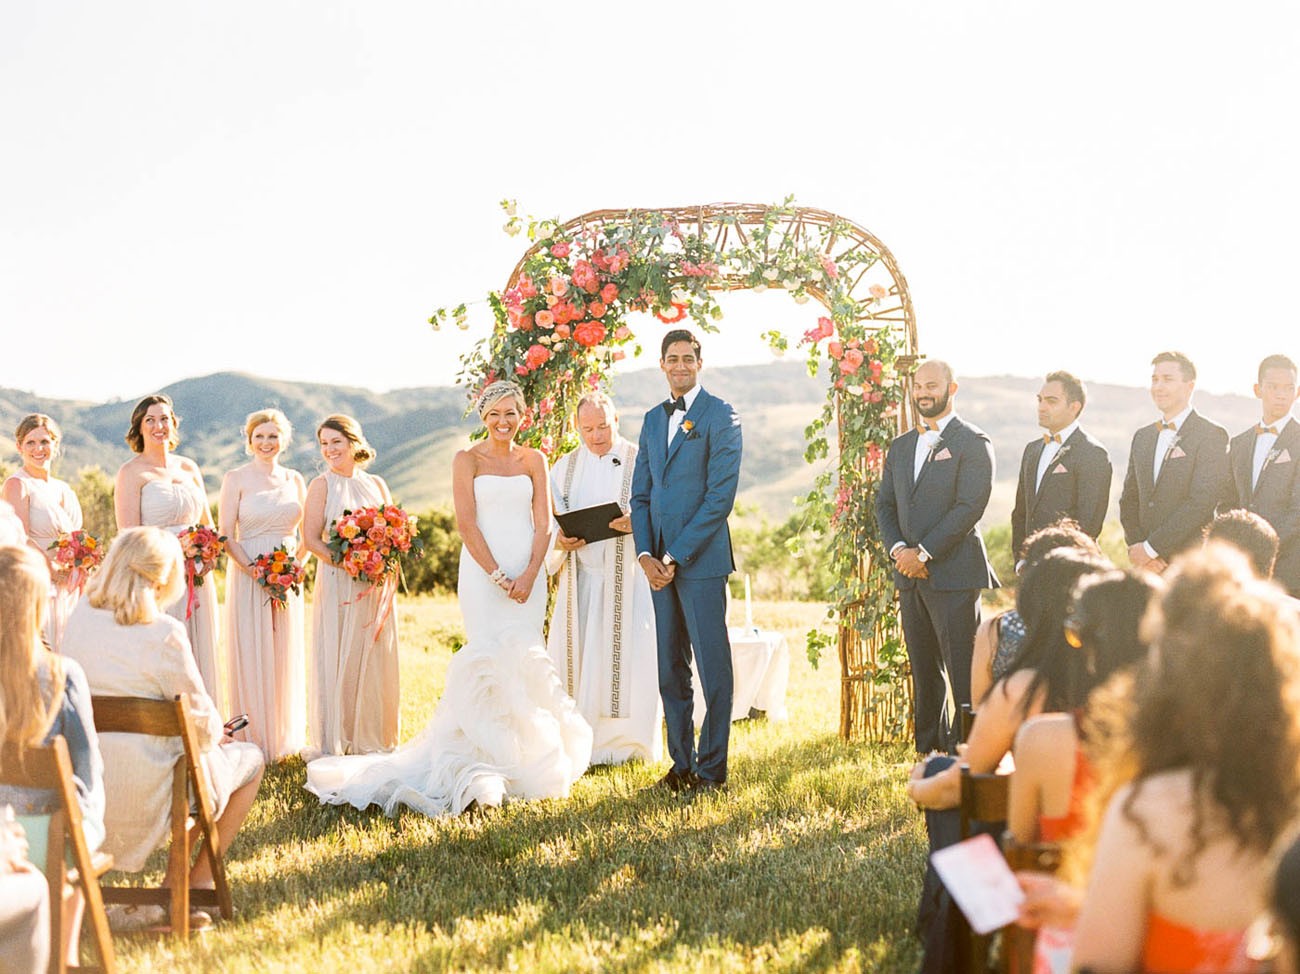 69 Traditional American Wedding Vows Melissa And